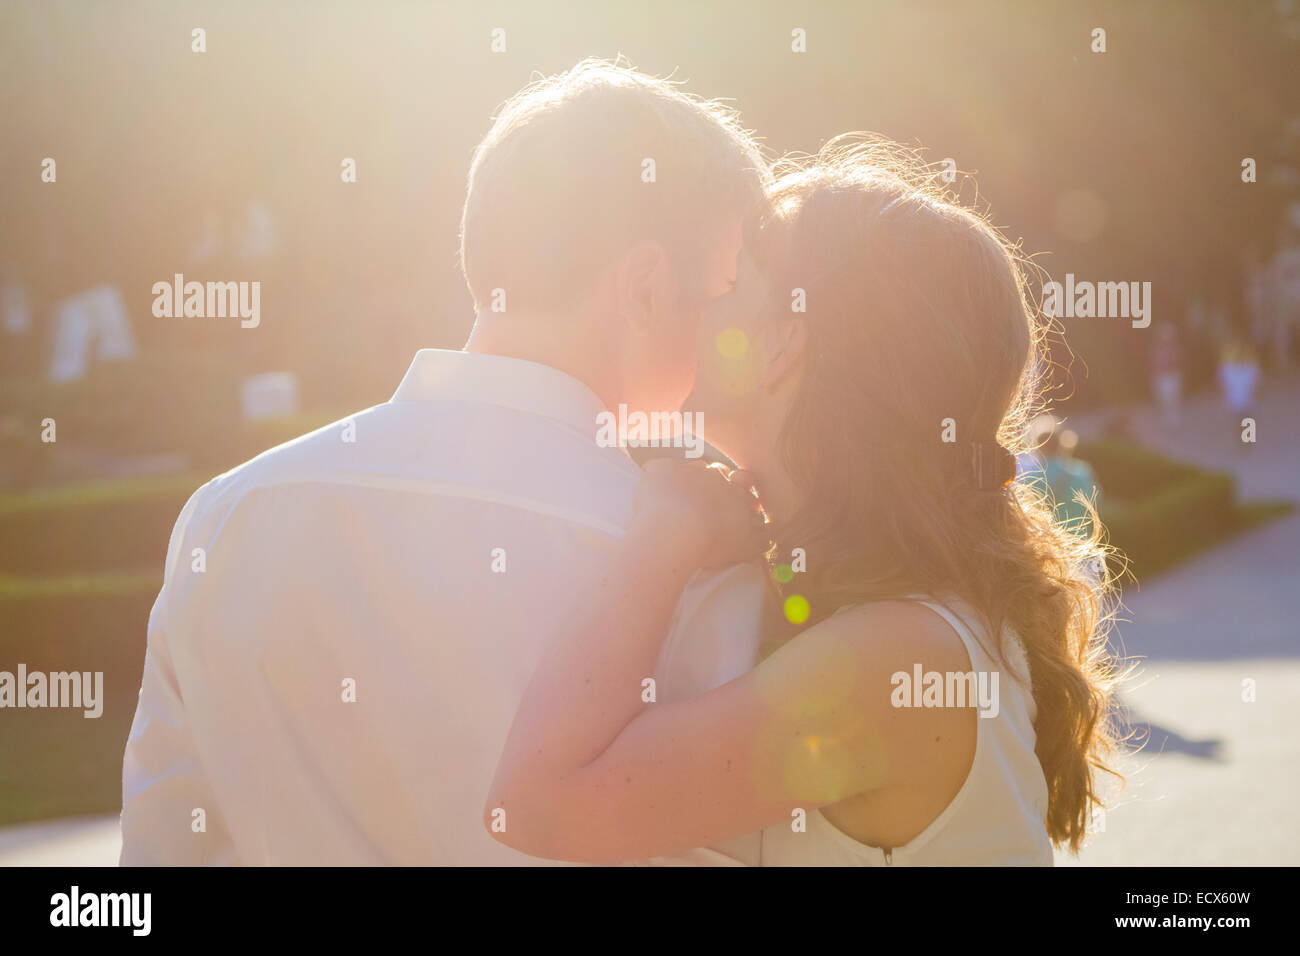 Two lovers - she is whispering something in his ear and he is listening Stock Photo